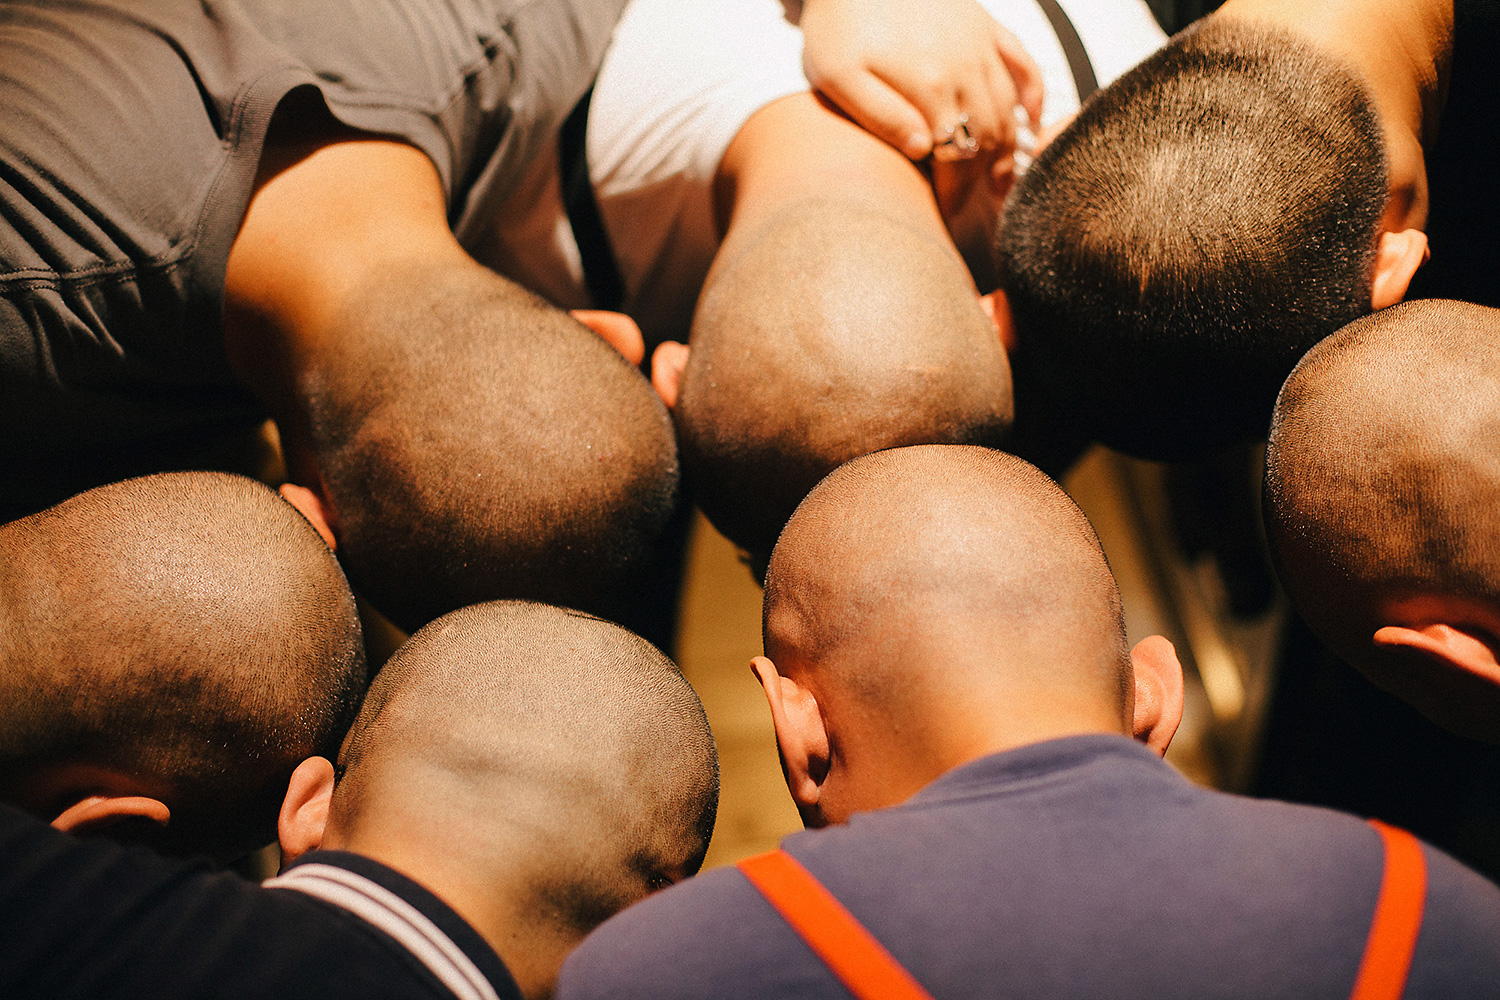 Following Bangbang's recommendation, the group touch their shaved heads together in a circle. When reviewing the photo on the camera screen, Ma laughed, 'Shit, what a bunch of meatheads!'